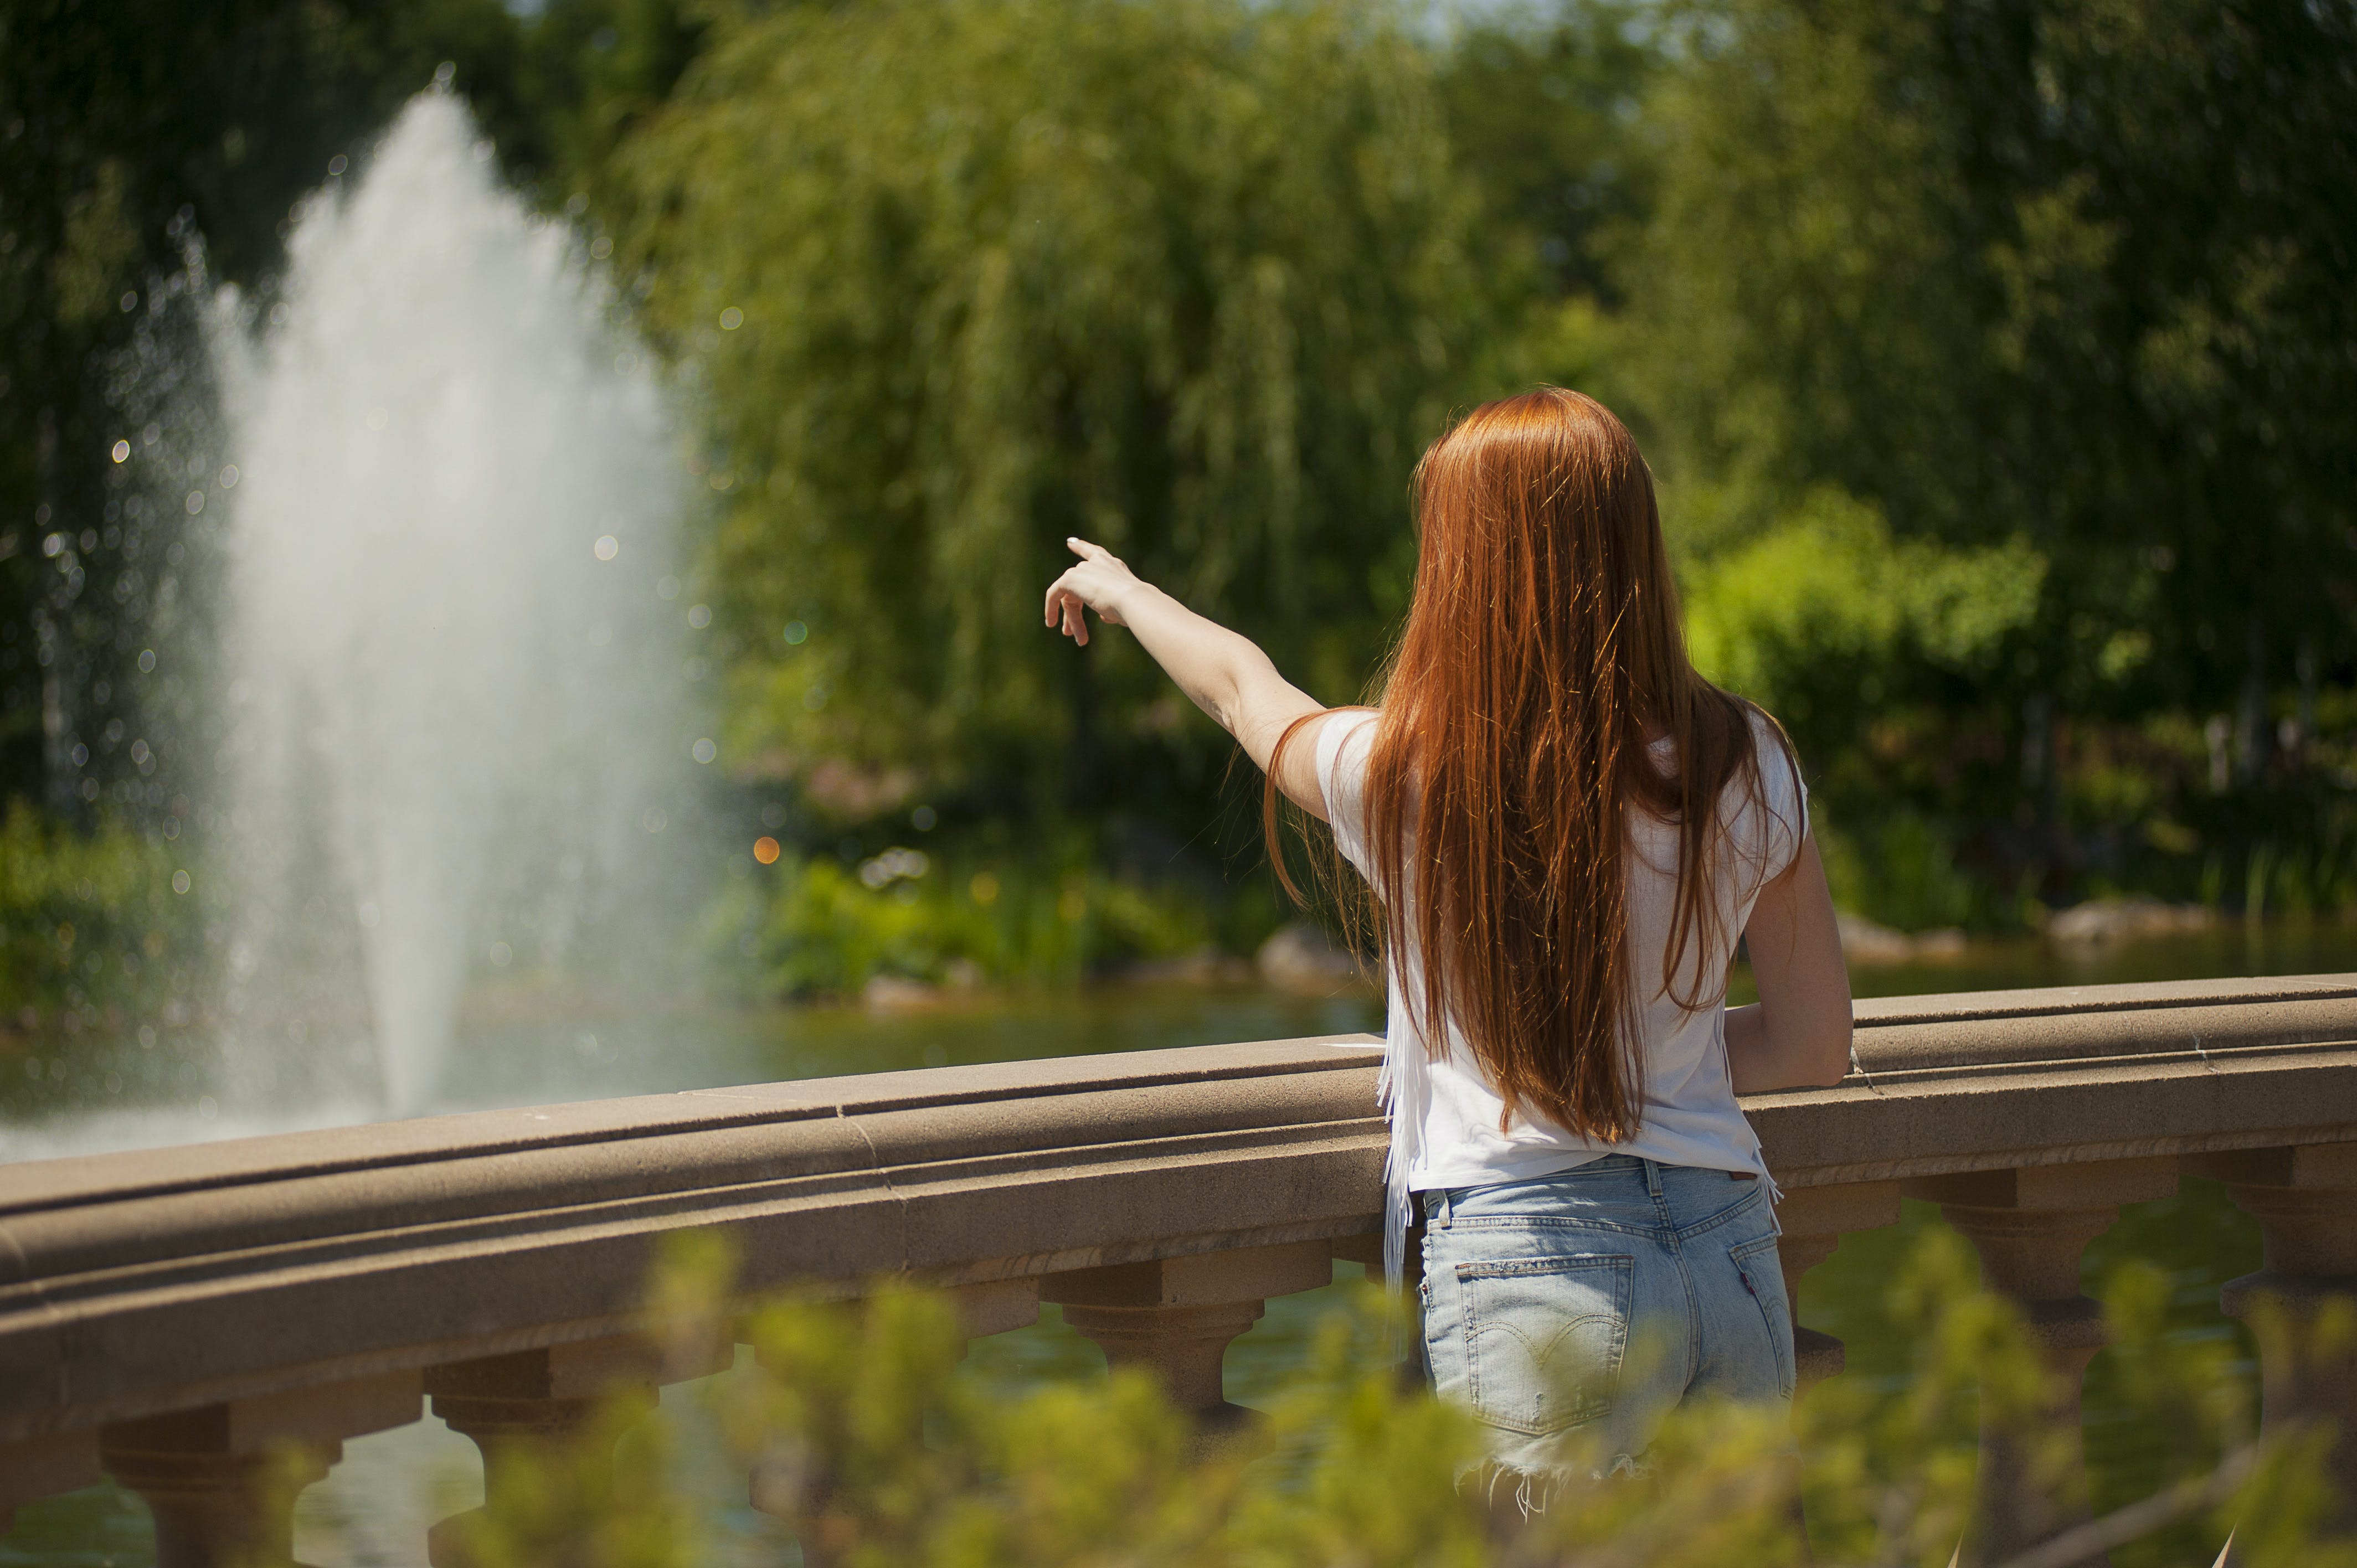 Shallow Focus Photo of Woman Standing in Front of Body of Water With Fountain